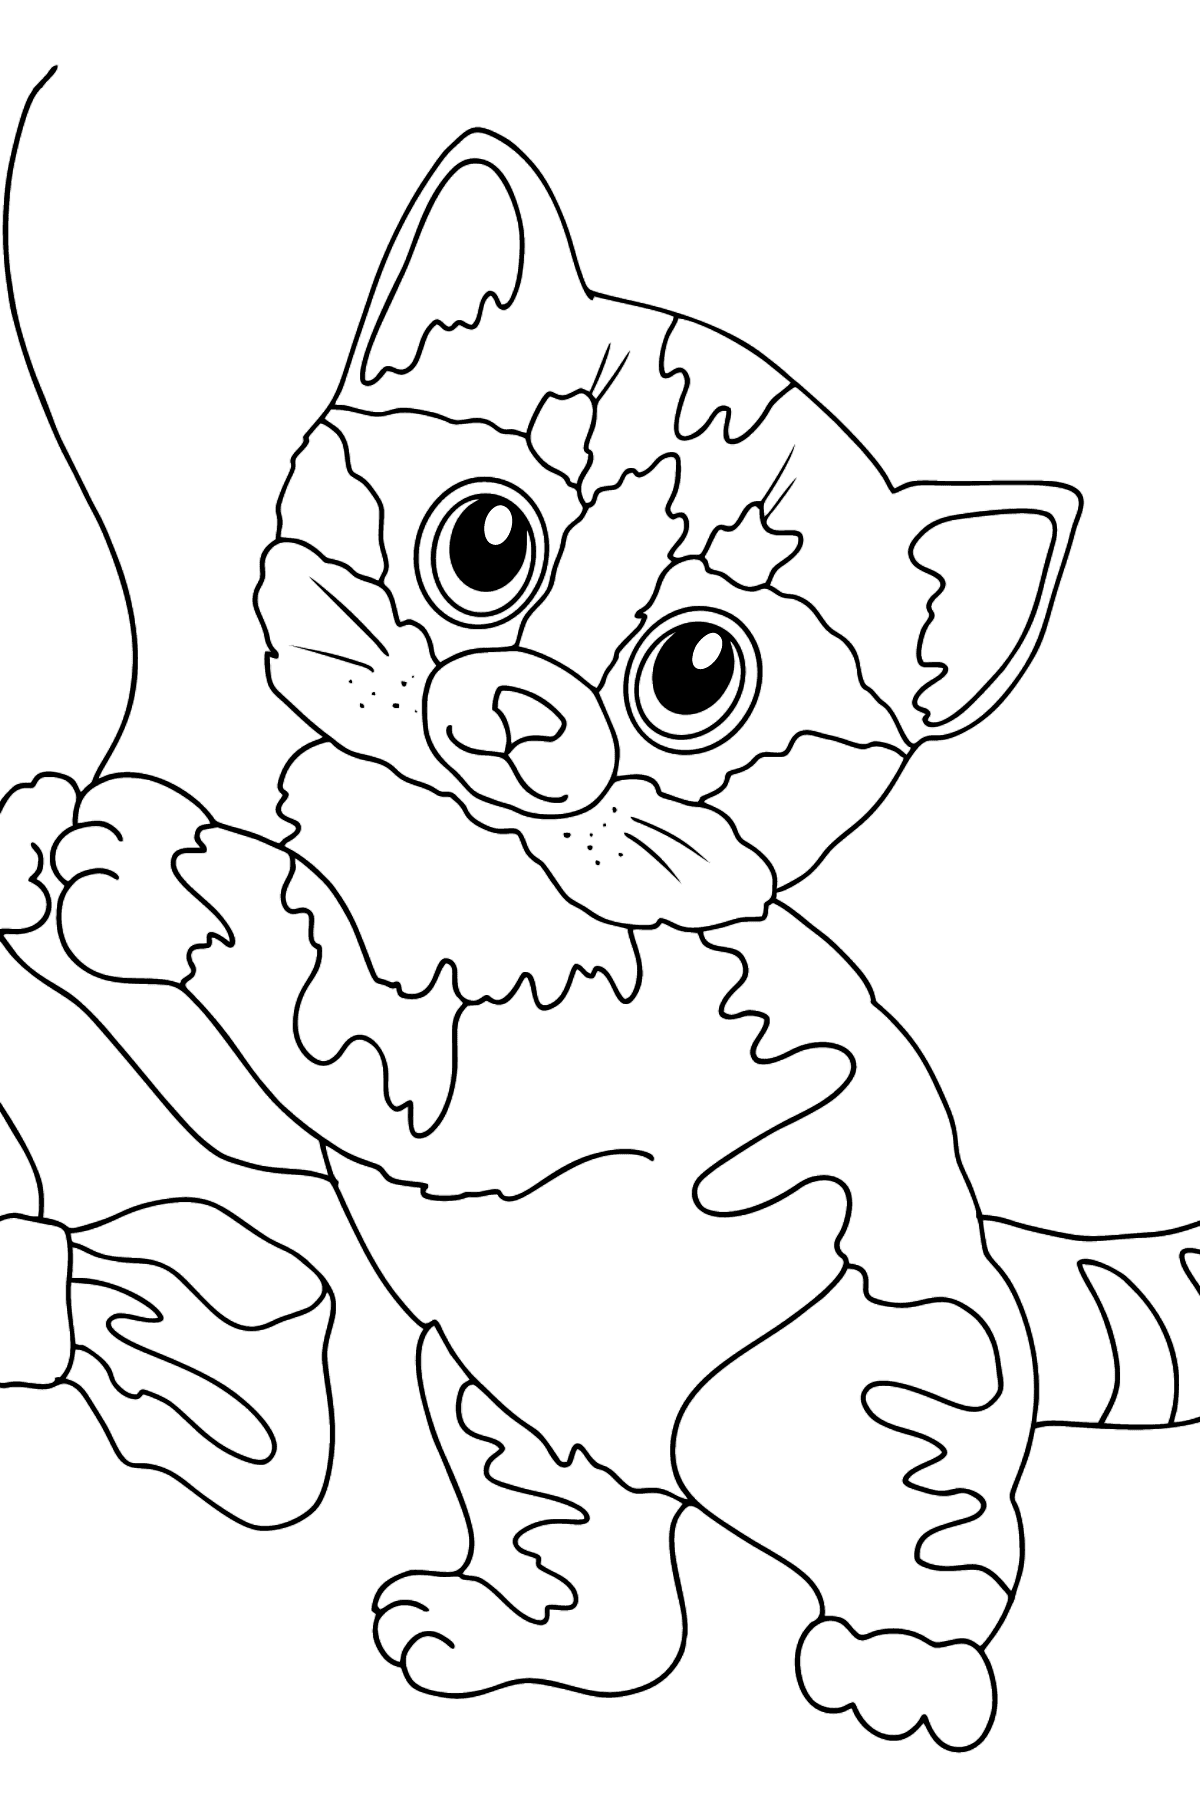 Coloring Page - A Kitten is Having Fun with a Bow - Coloring Pages for Kids